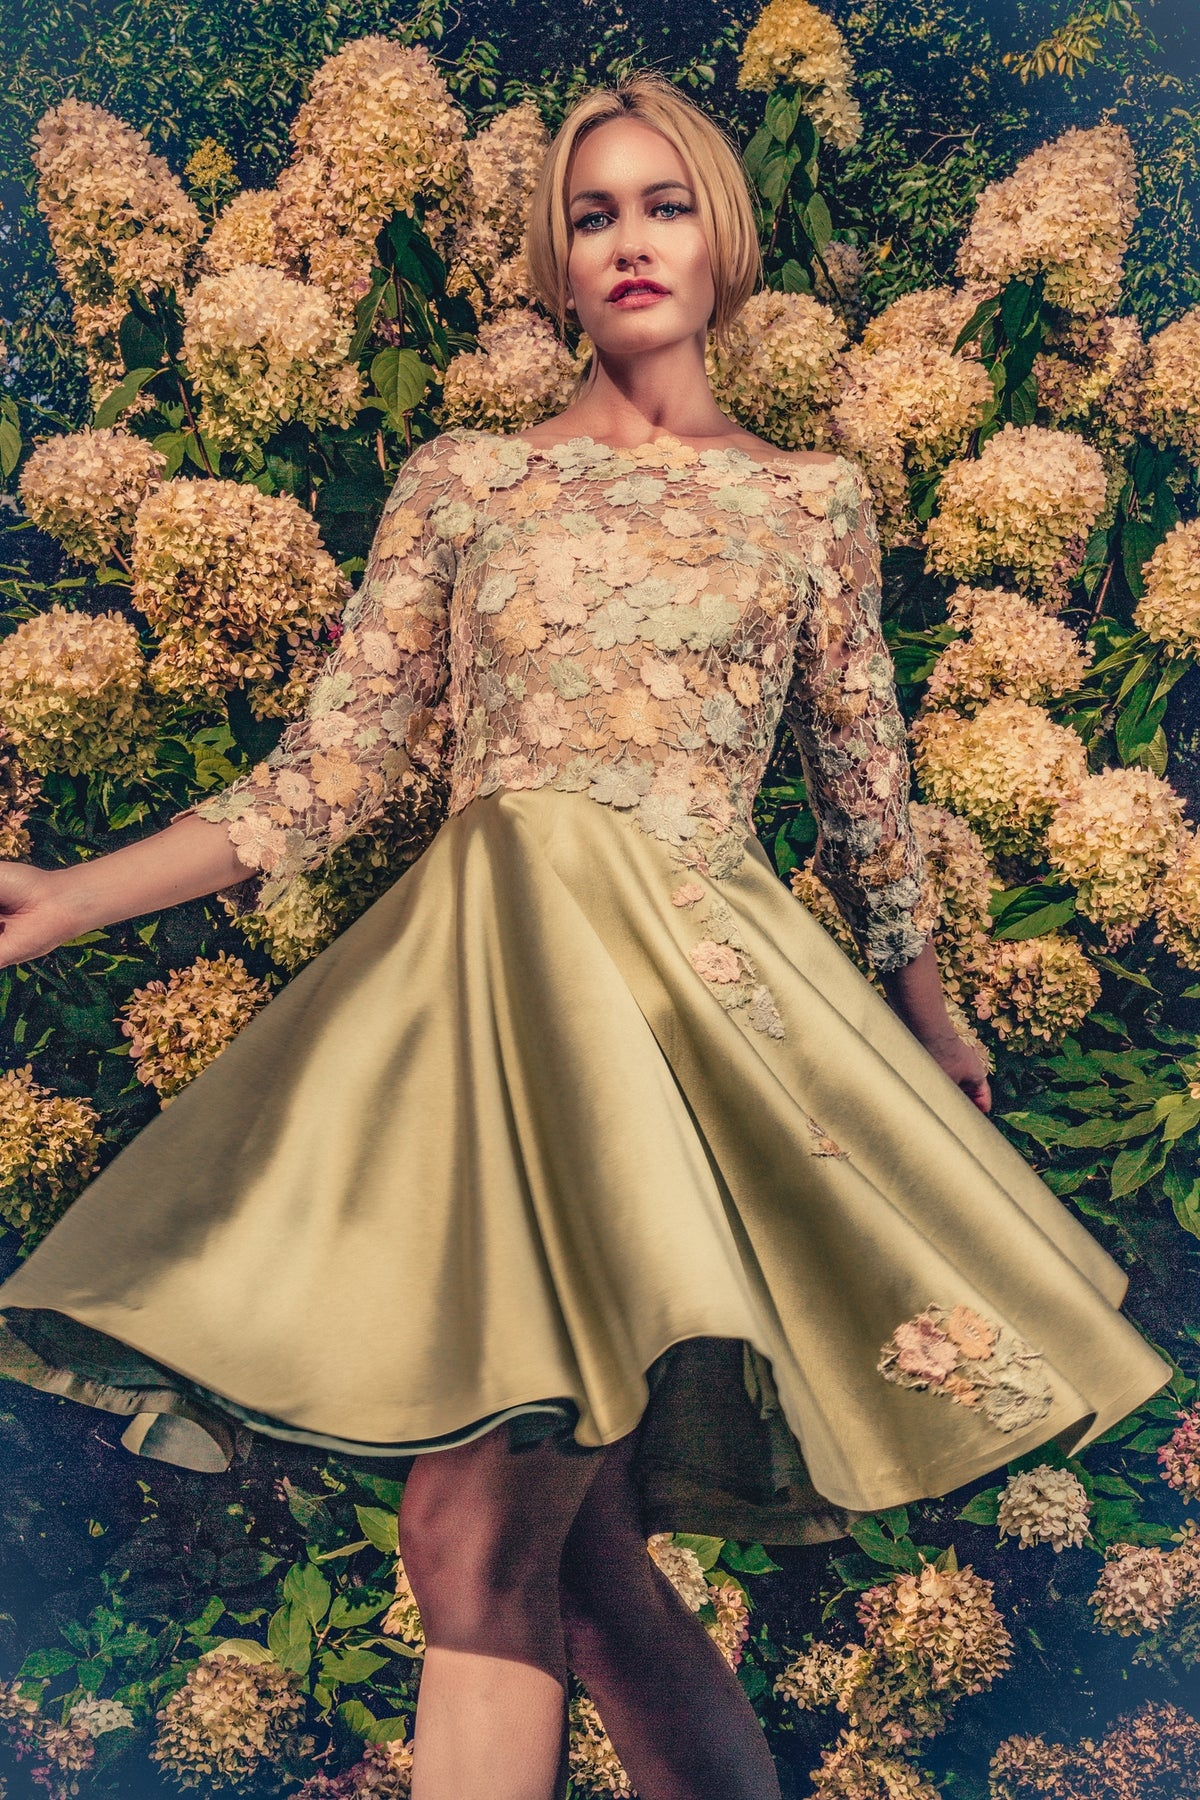 anna nieman designer dress Boston. A swirl dress made from silvery-goldish french Guipure lace. You will blend in perfect unison with the flowers during your garden party.